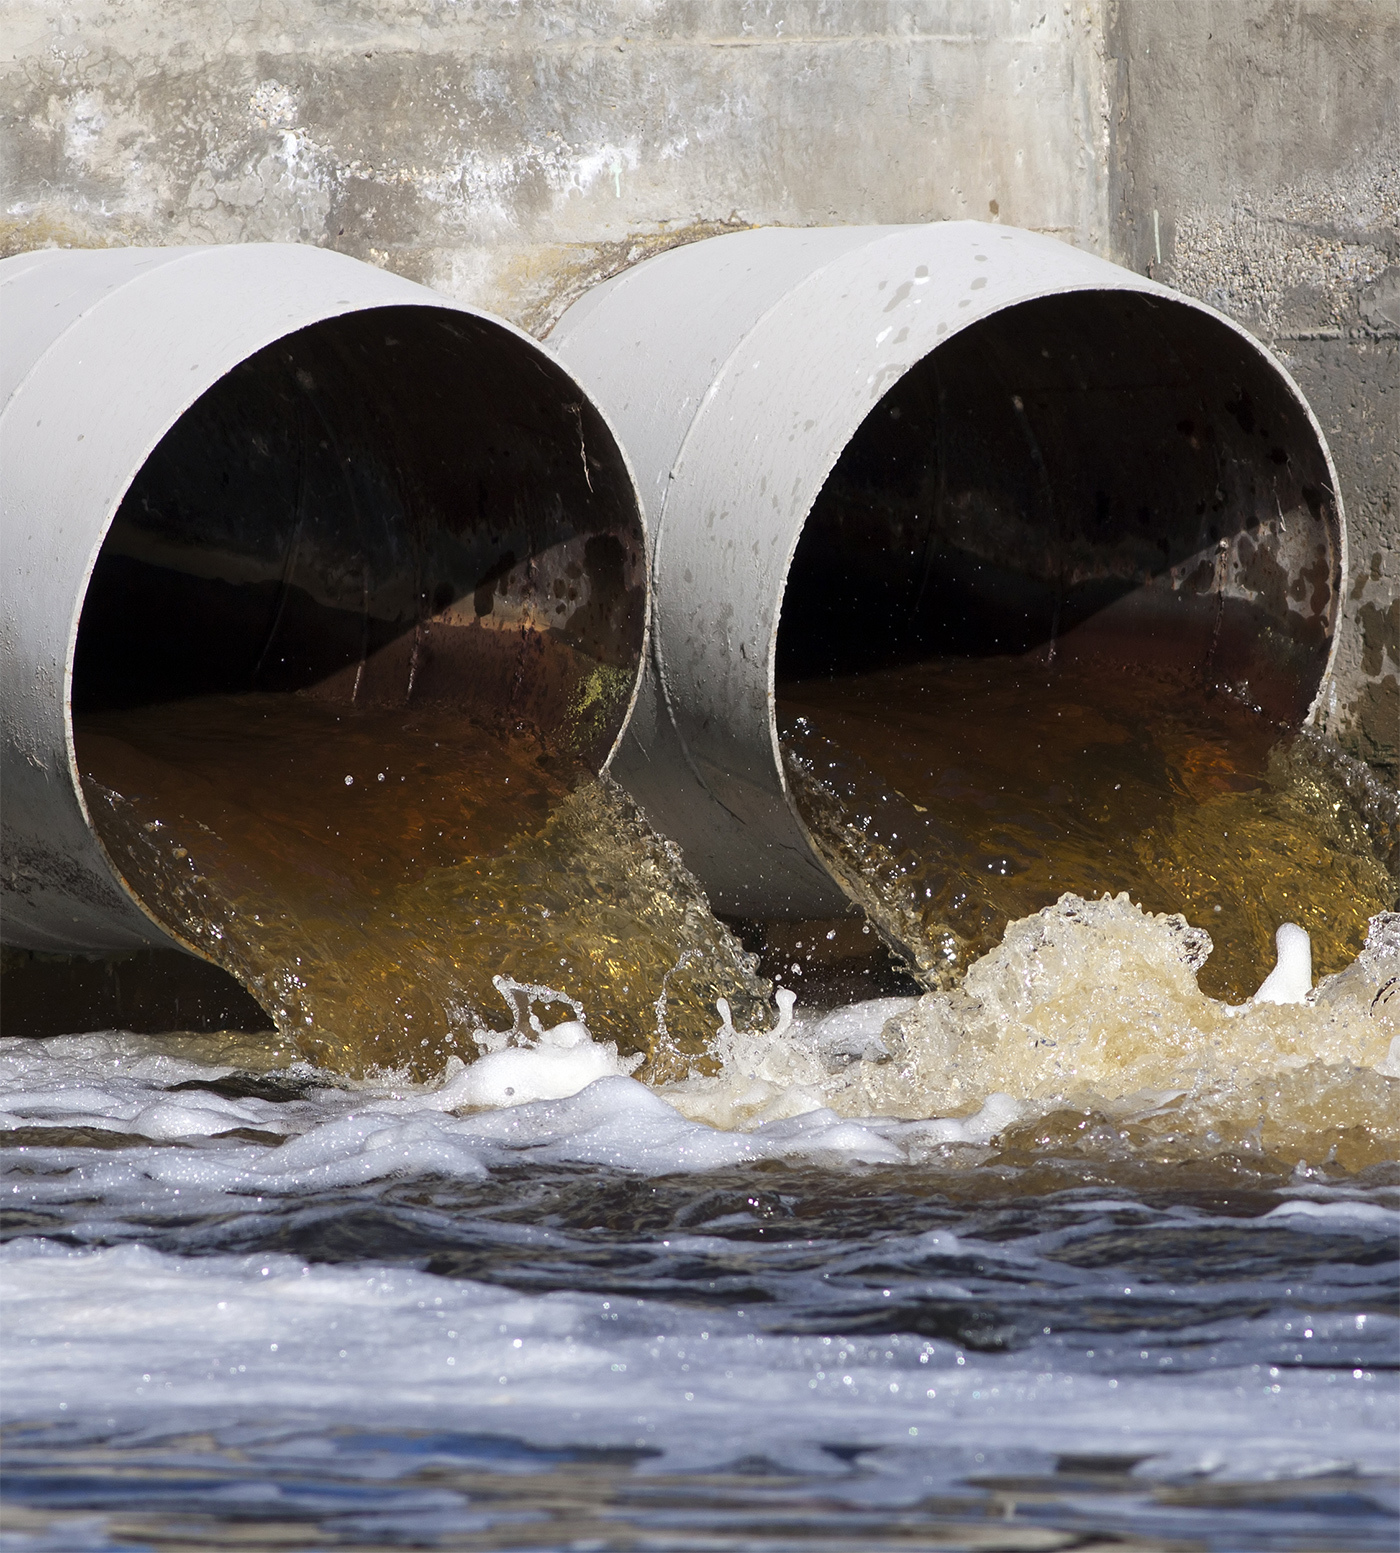 By EPA estimates,combined sewer overflows occur between 23,000 and 75,000 times every year.